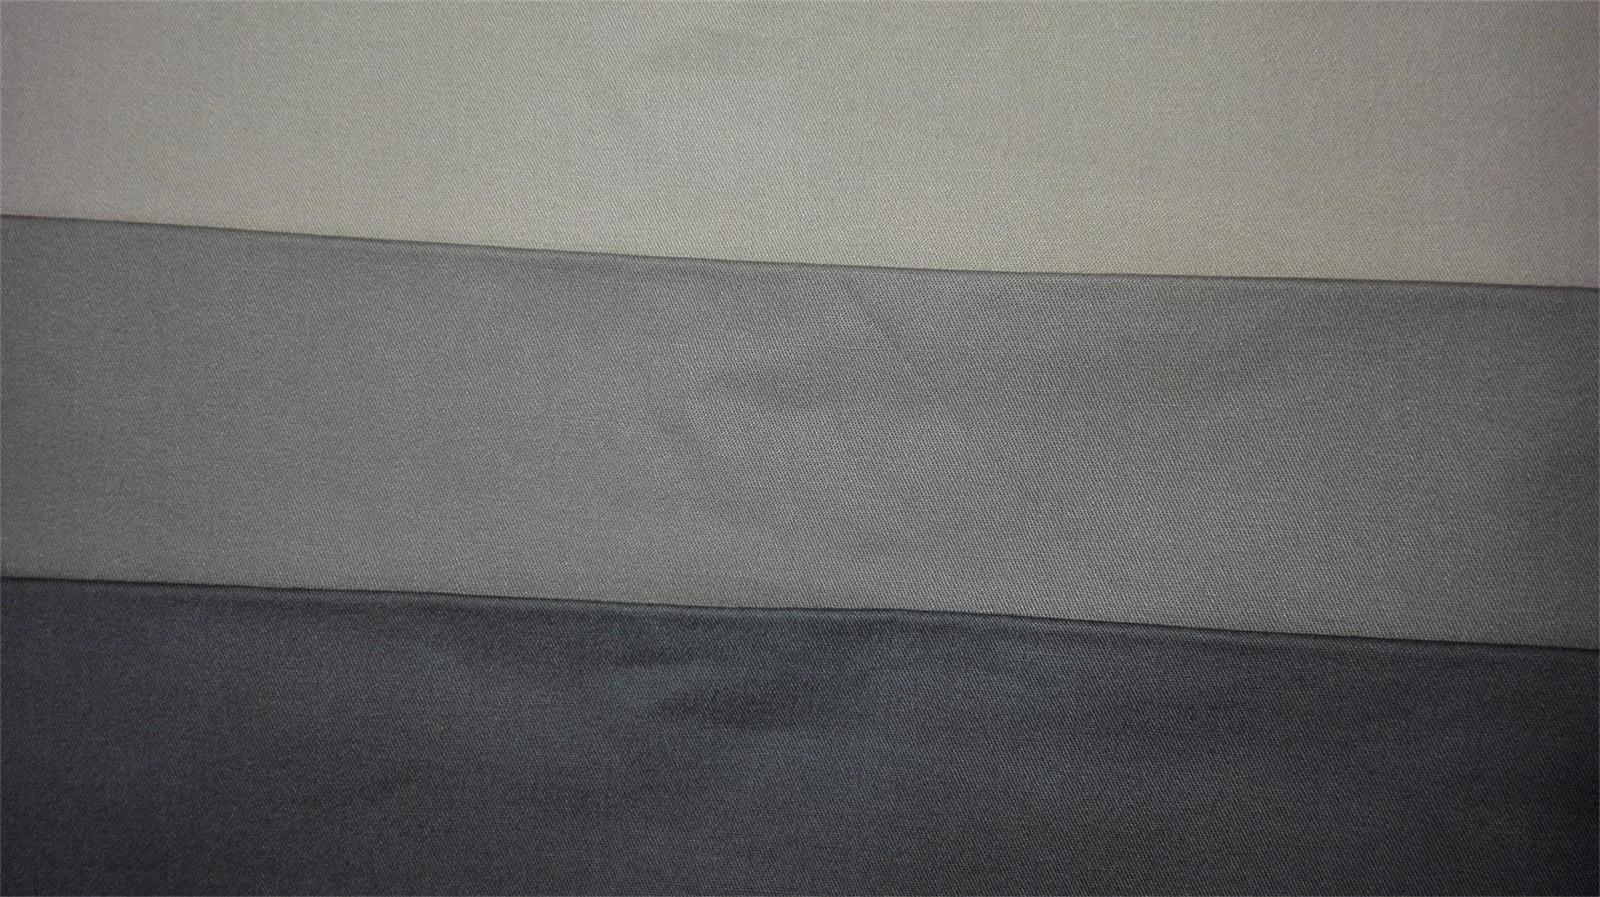 Sell 100%cotton 3221/13378 woven twill dyed fabric